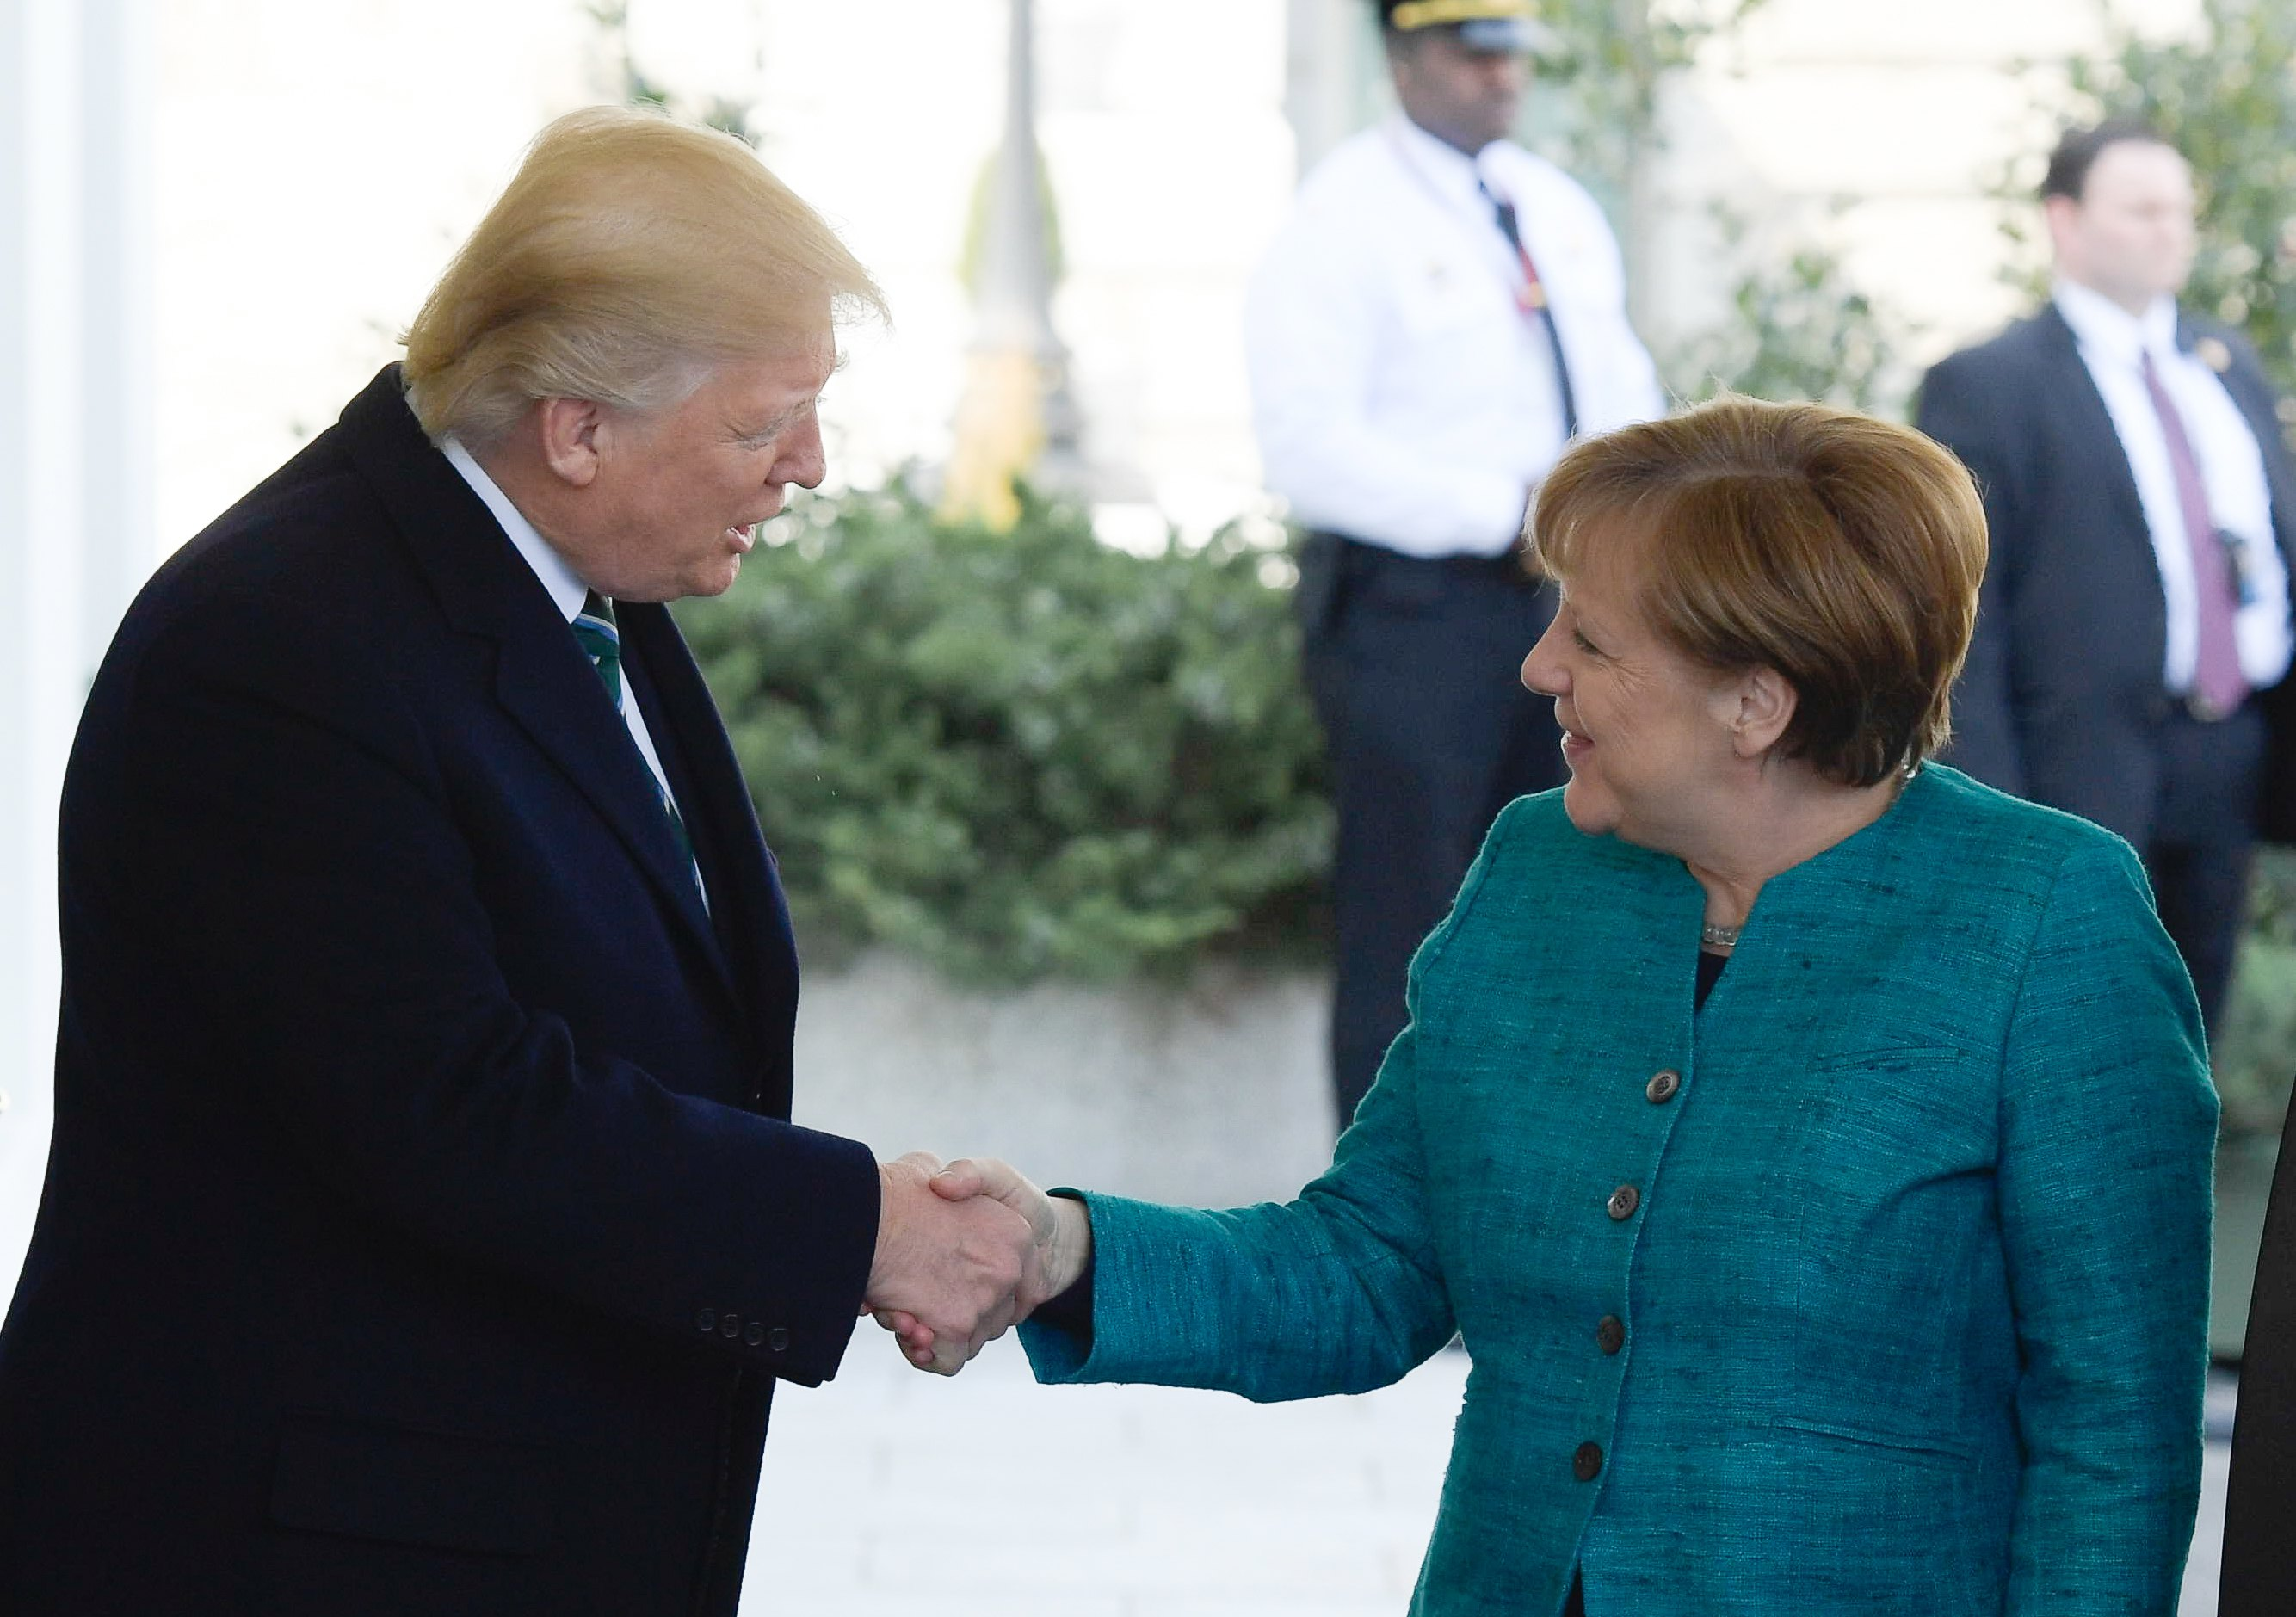 epa05854386 US President Donald J. Trump (L) welcomes German Chancellor Angela Merkel at the White House in Washington, DC, USA, 17 March 2017. Merkel's original visit on 14 March had to be postponed due to bad weather.  EPA/CLEMENS BILAN